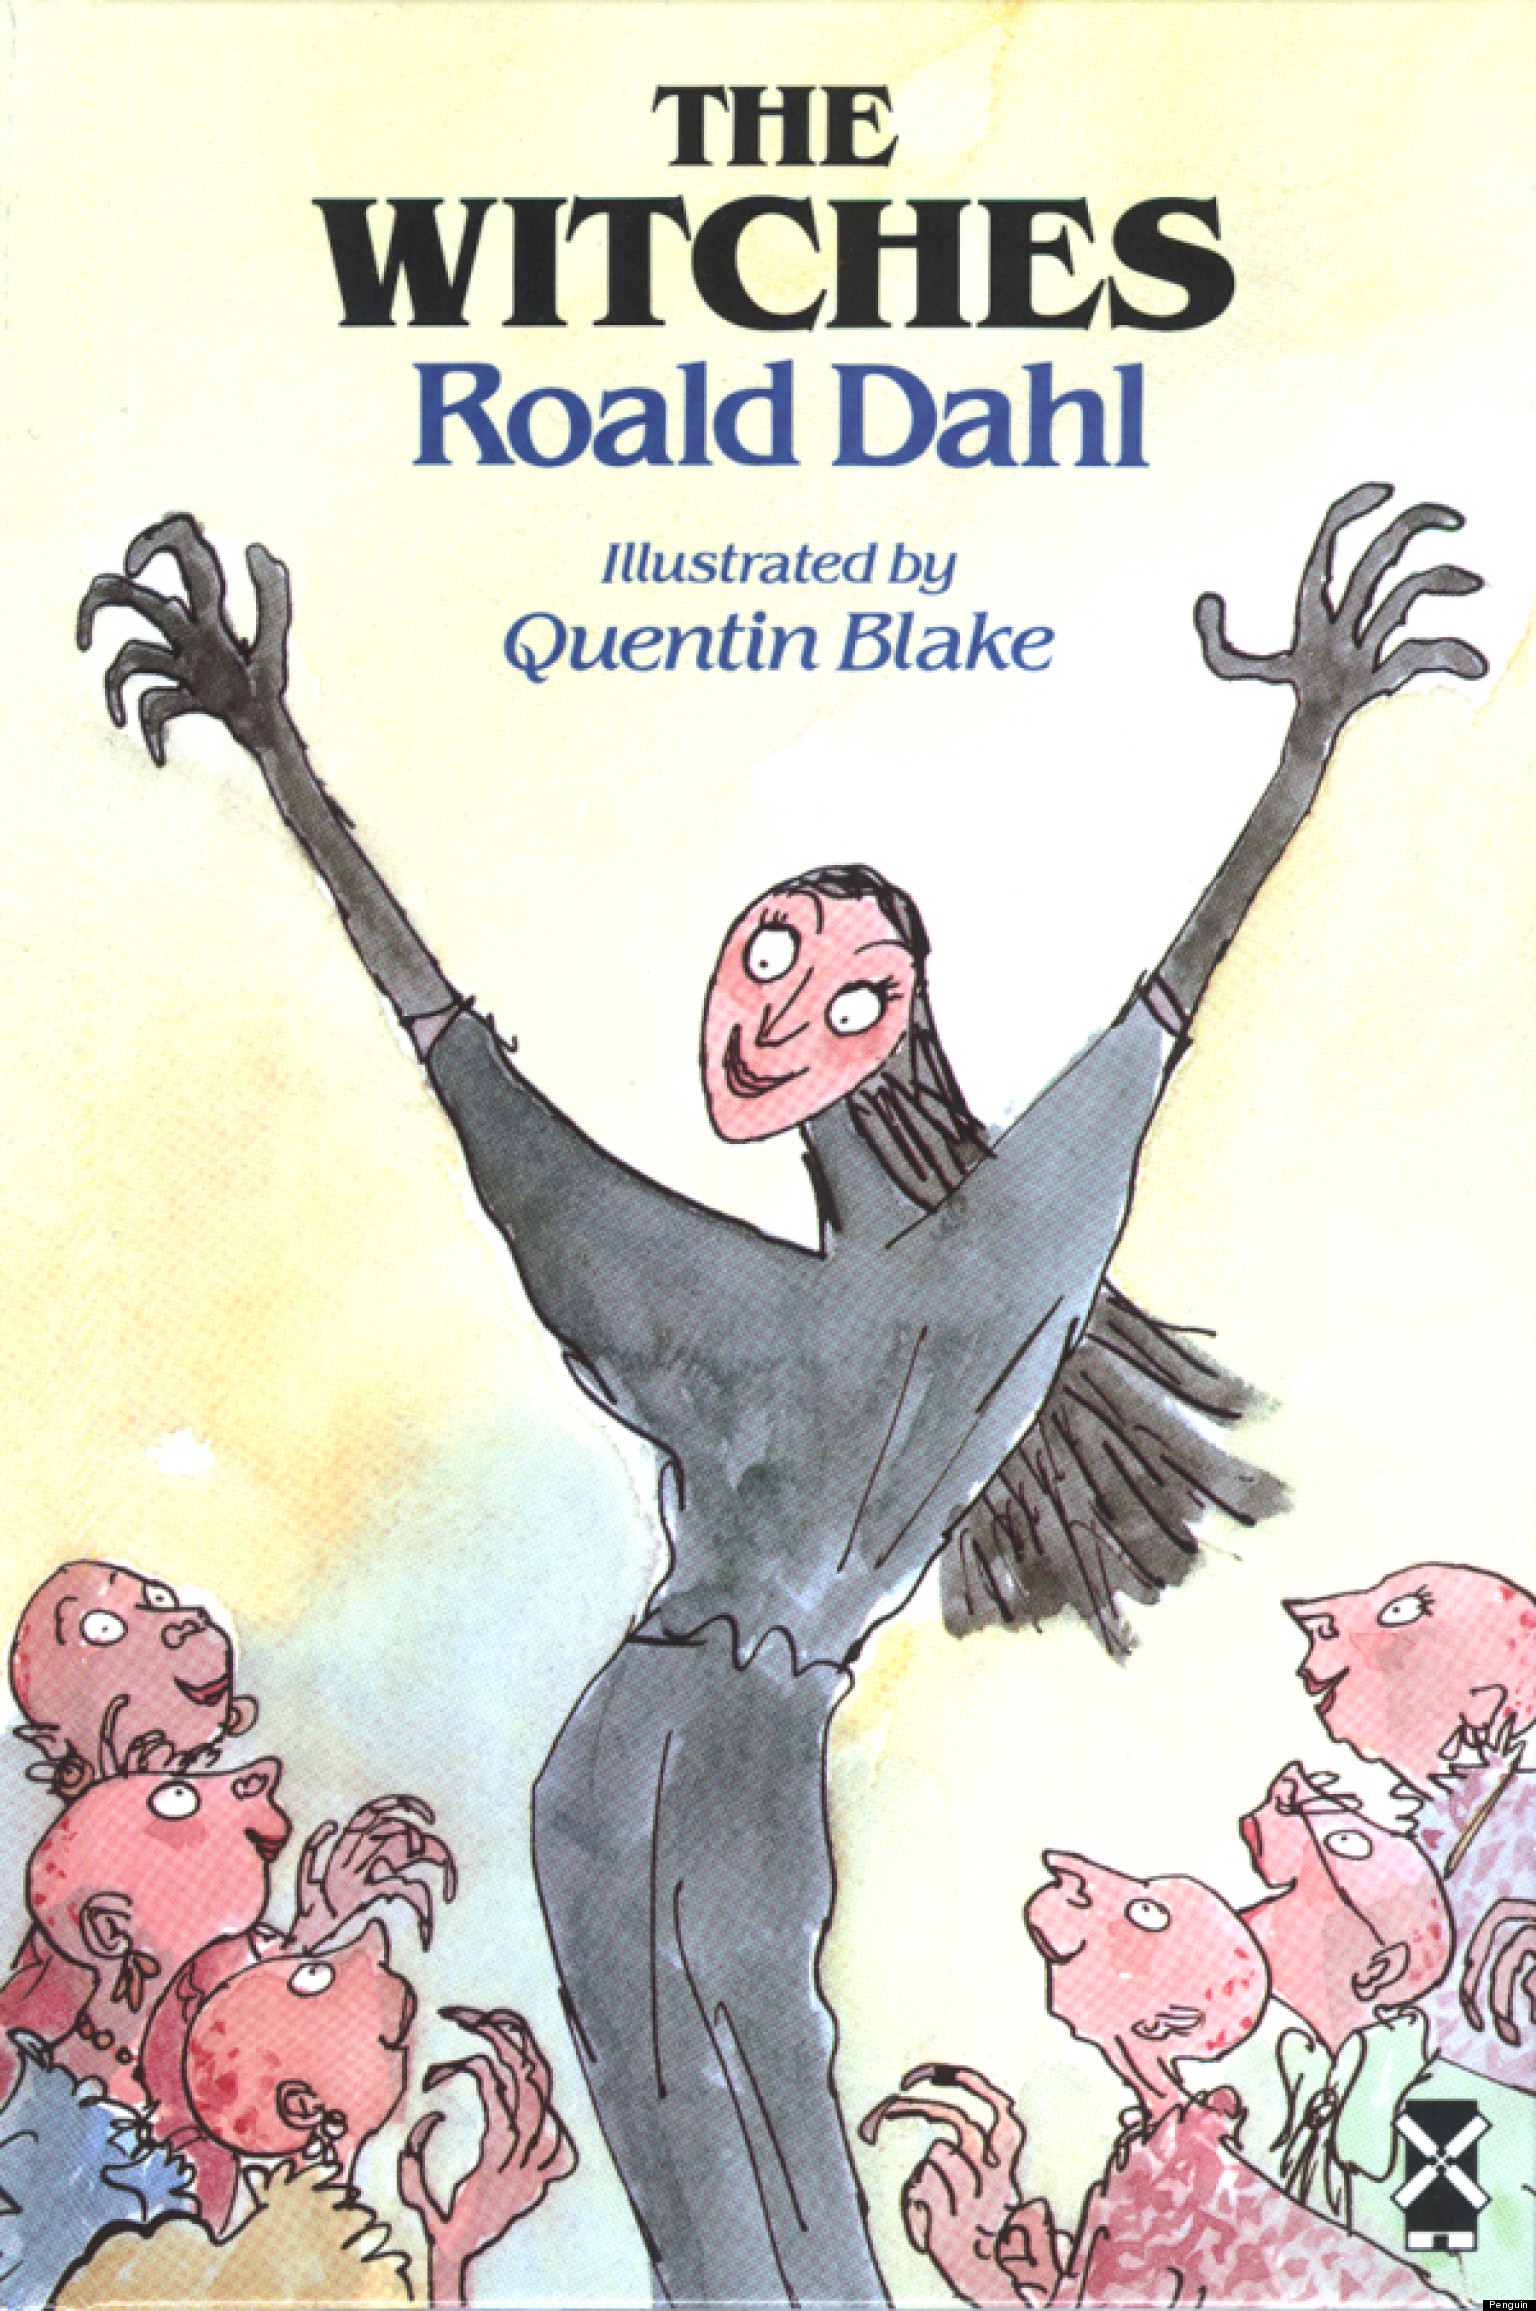 Black Beauty Original Book Cover : What can we learn from roald dahl s the witches huffpost